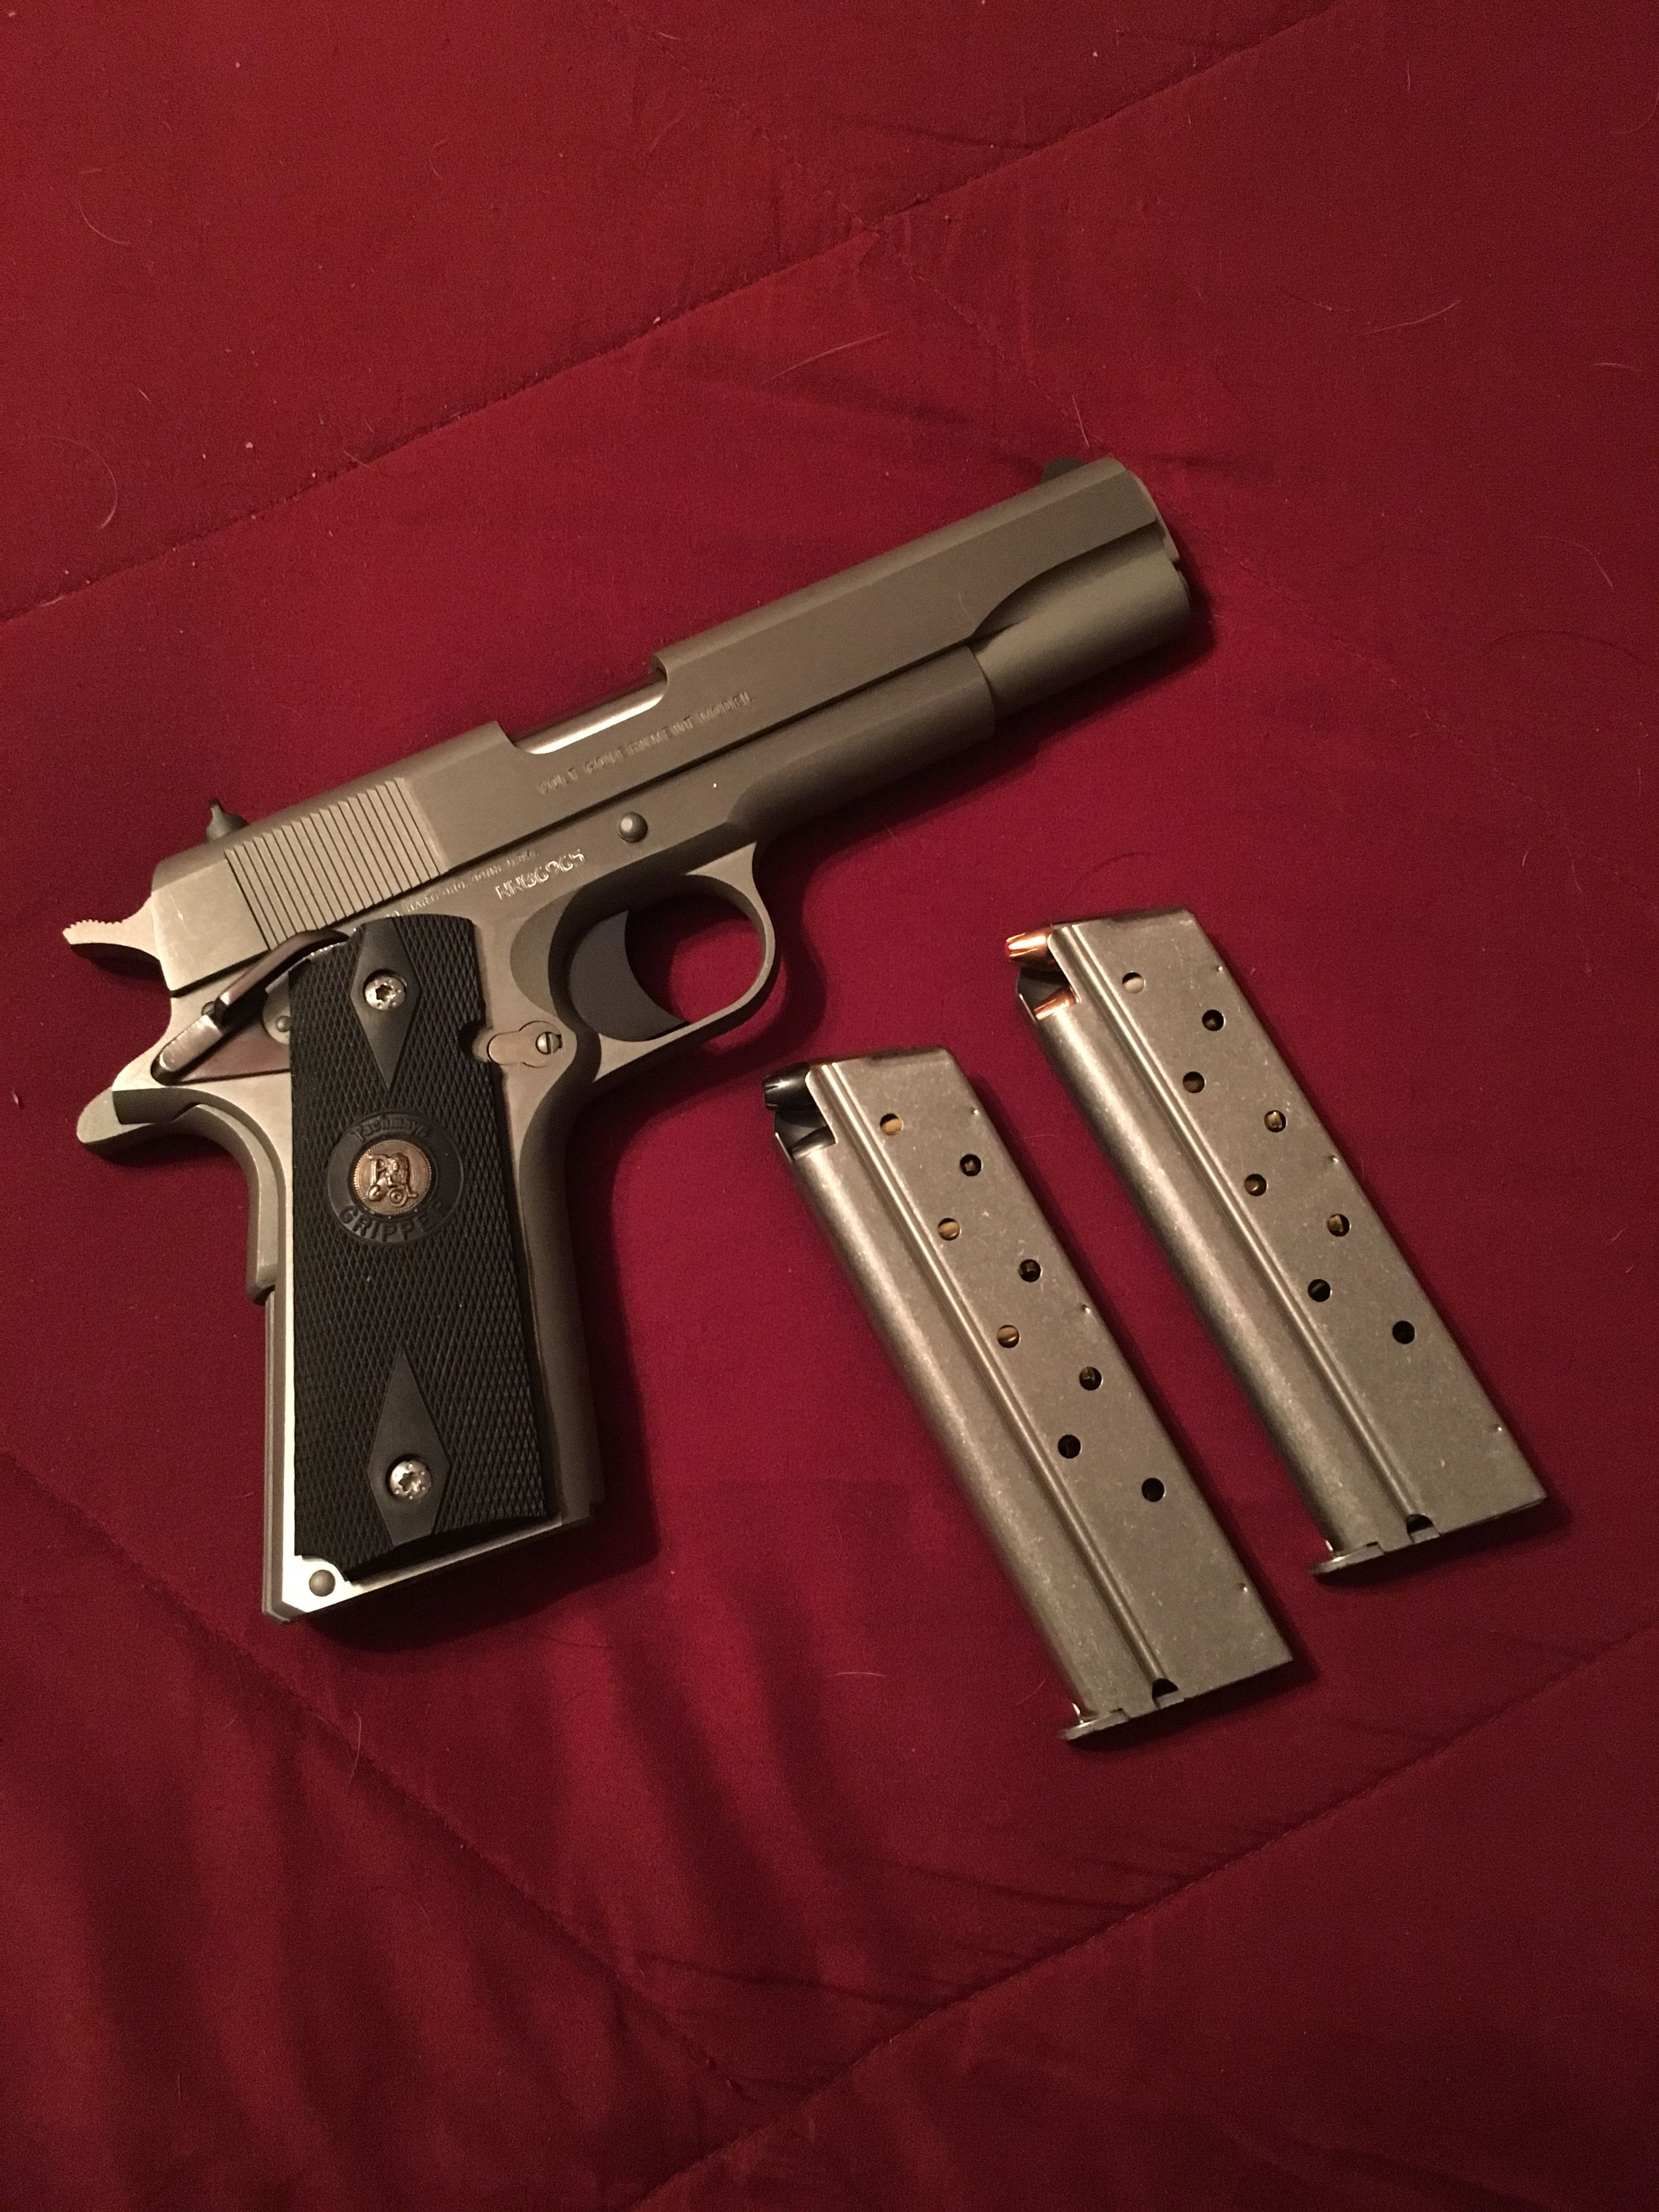 Colt 1911 government 9mm What a wonderful gun to own and shoot